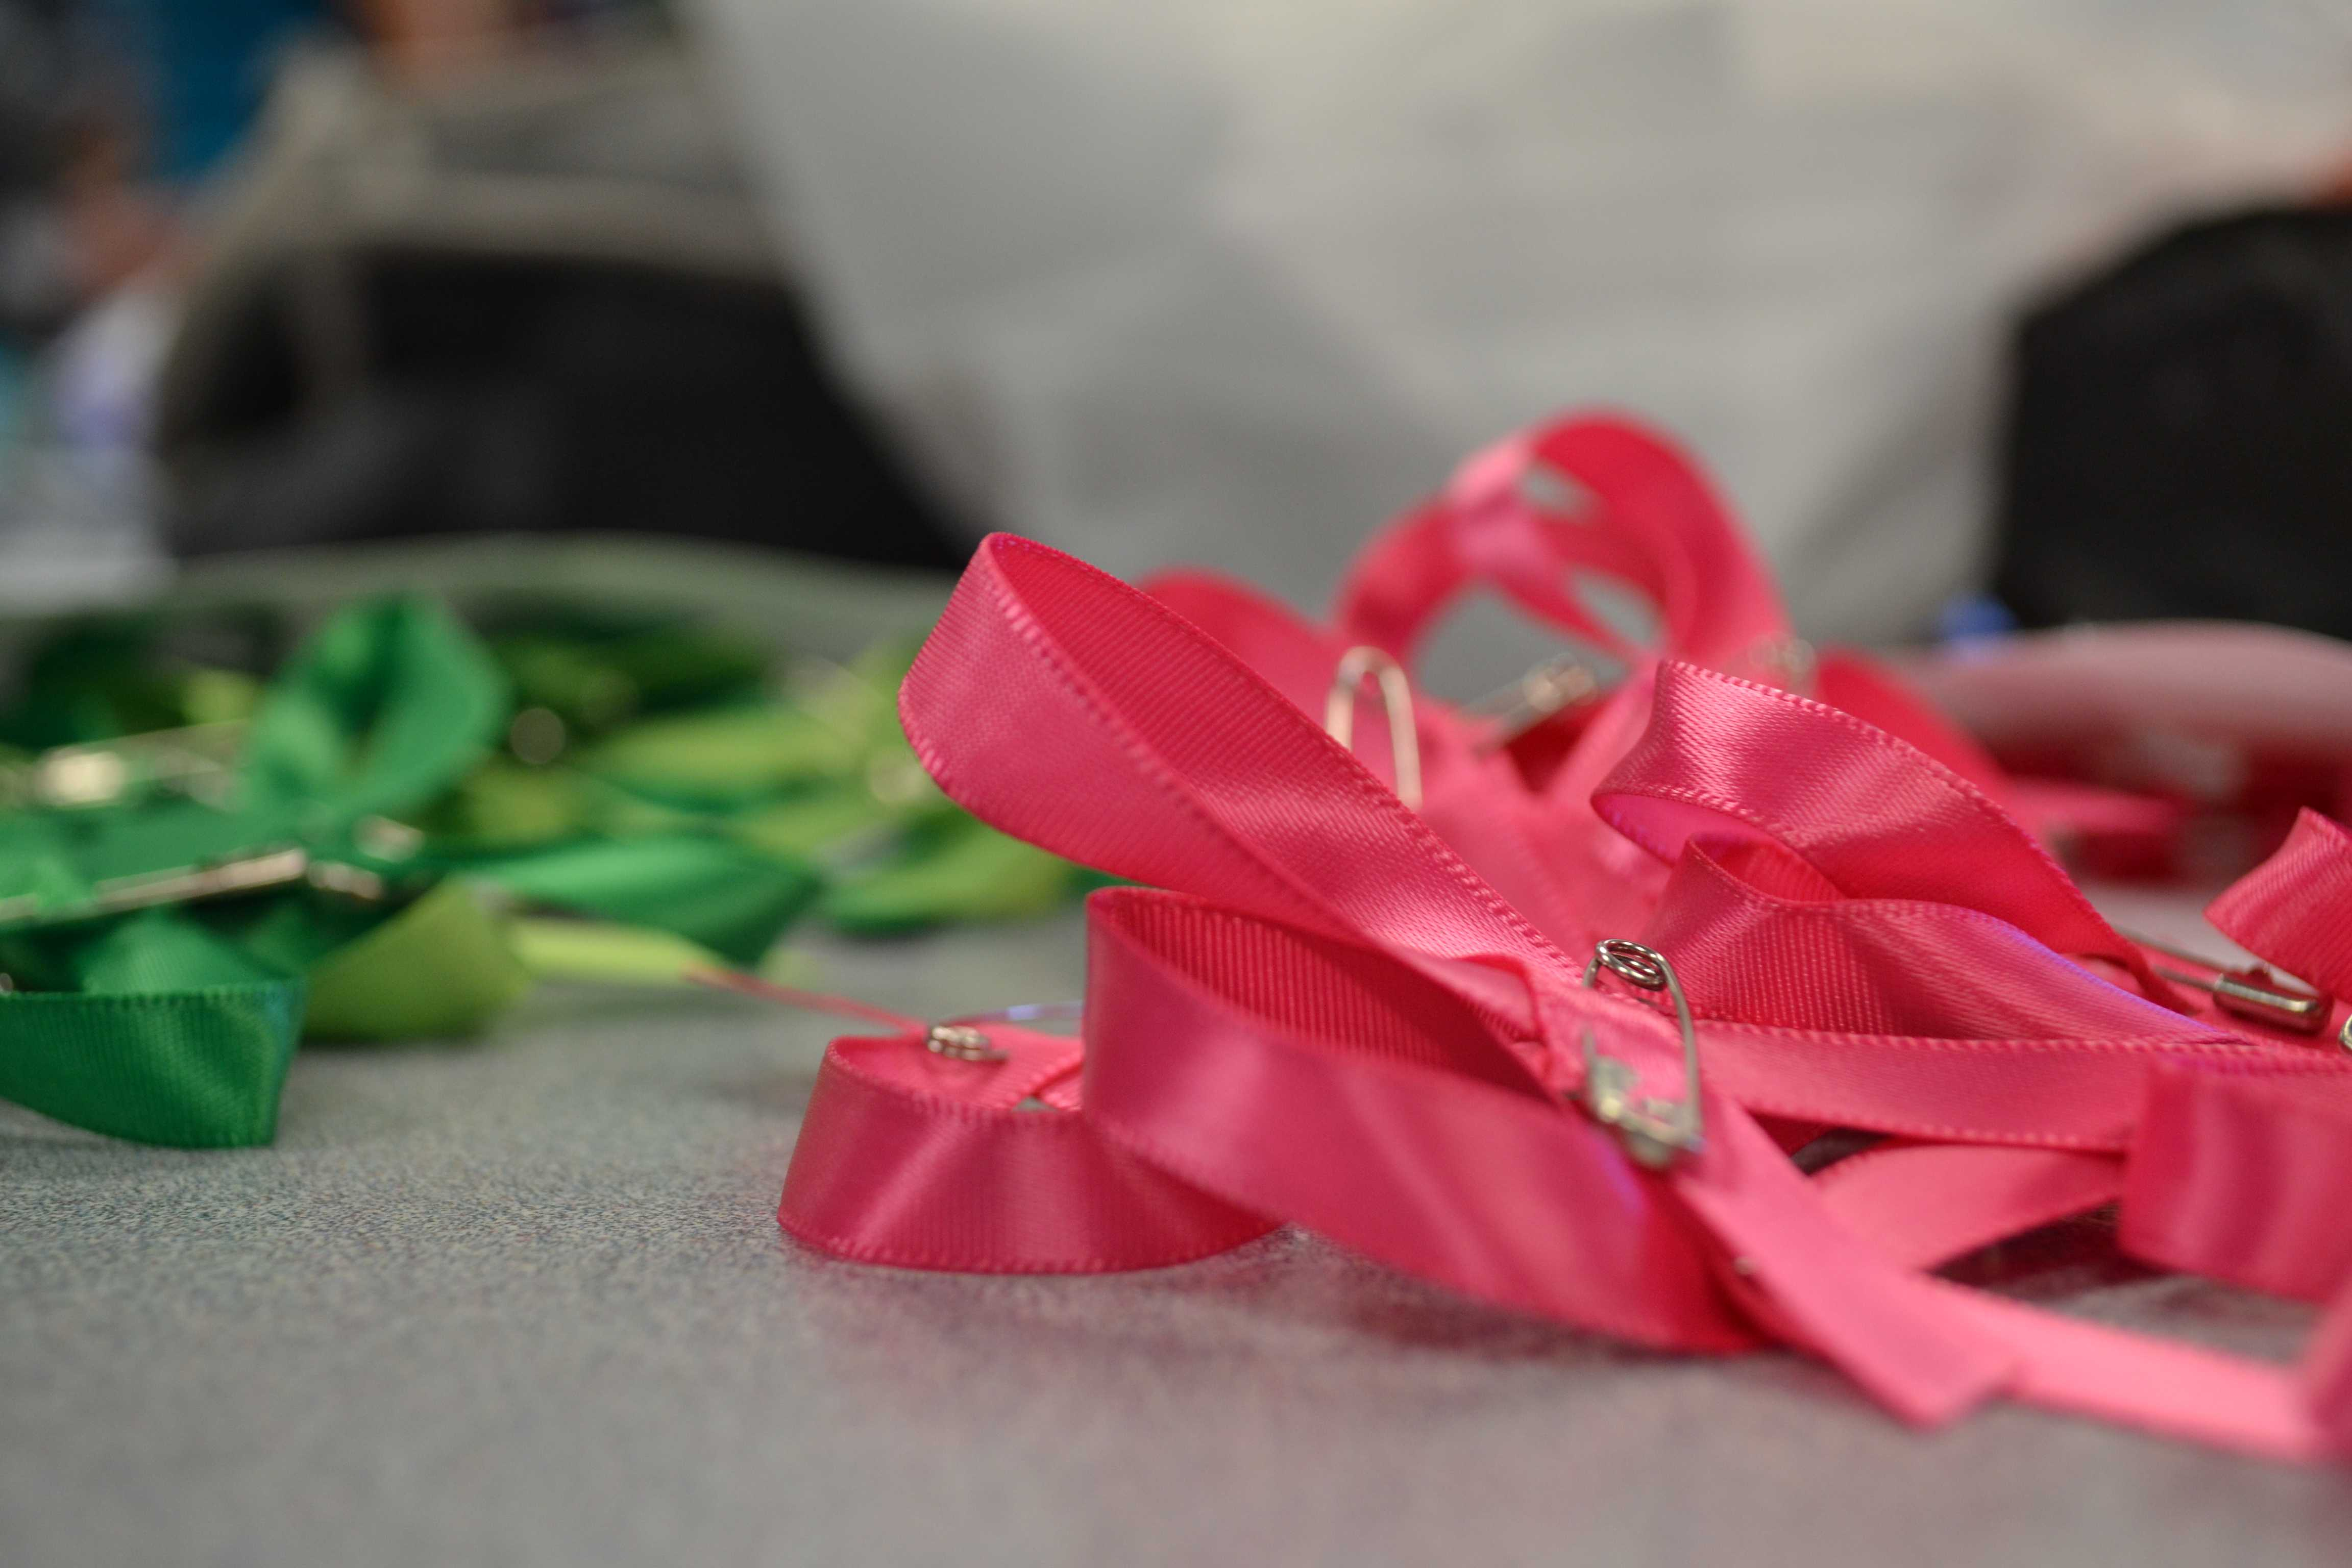 The pink ribbons for cancer will be handed out on Monday to promote awareness.